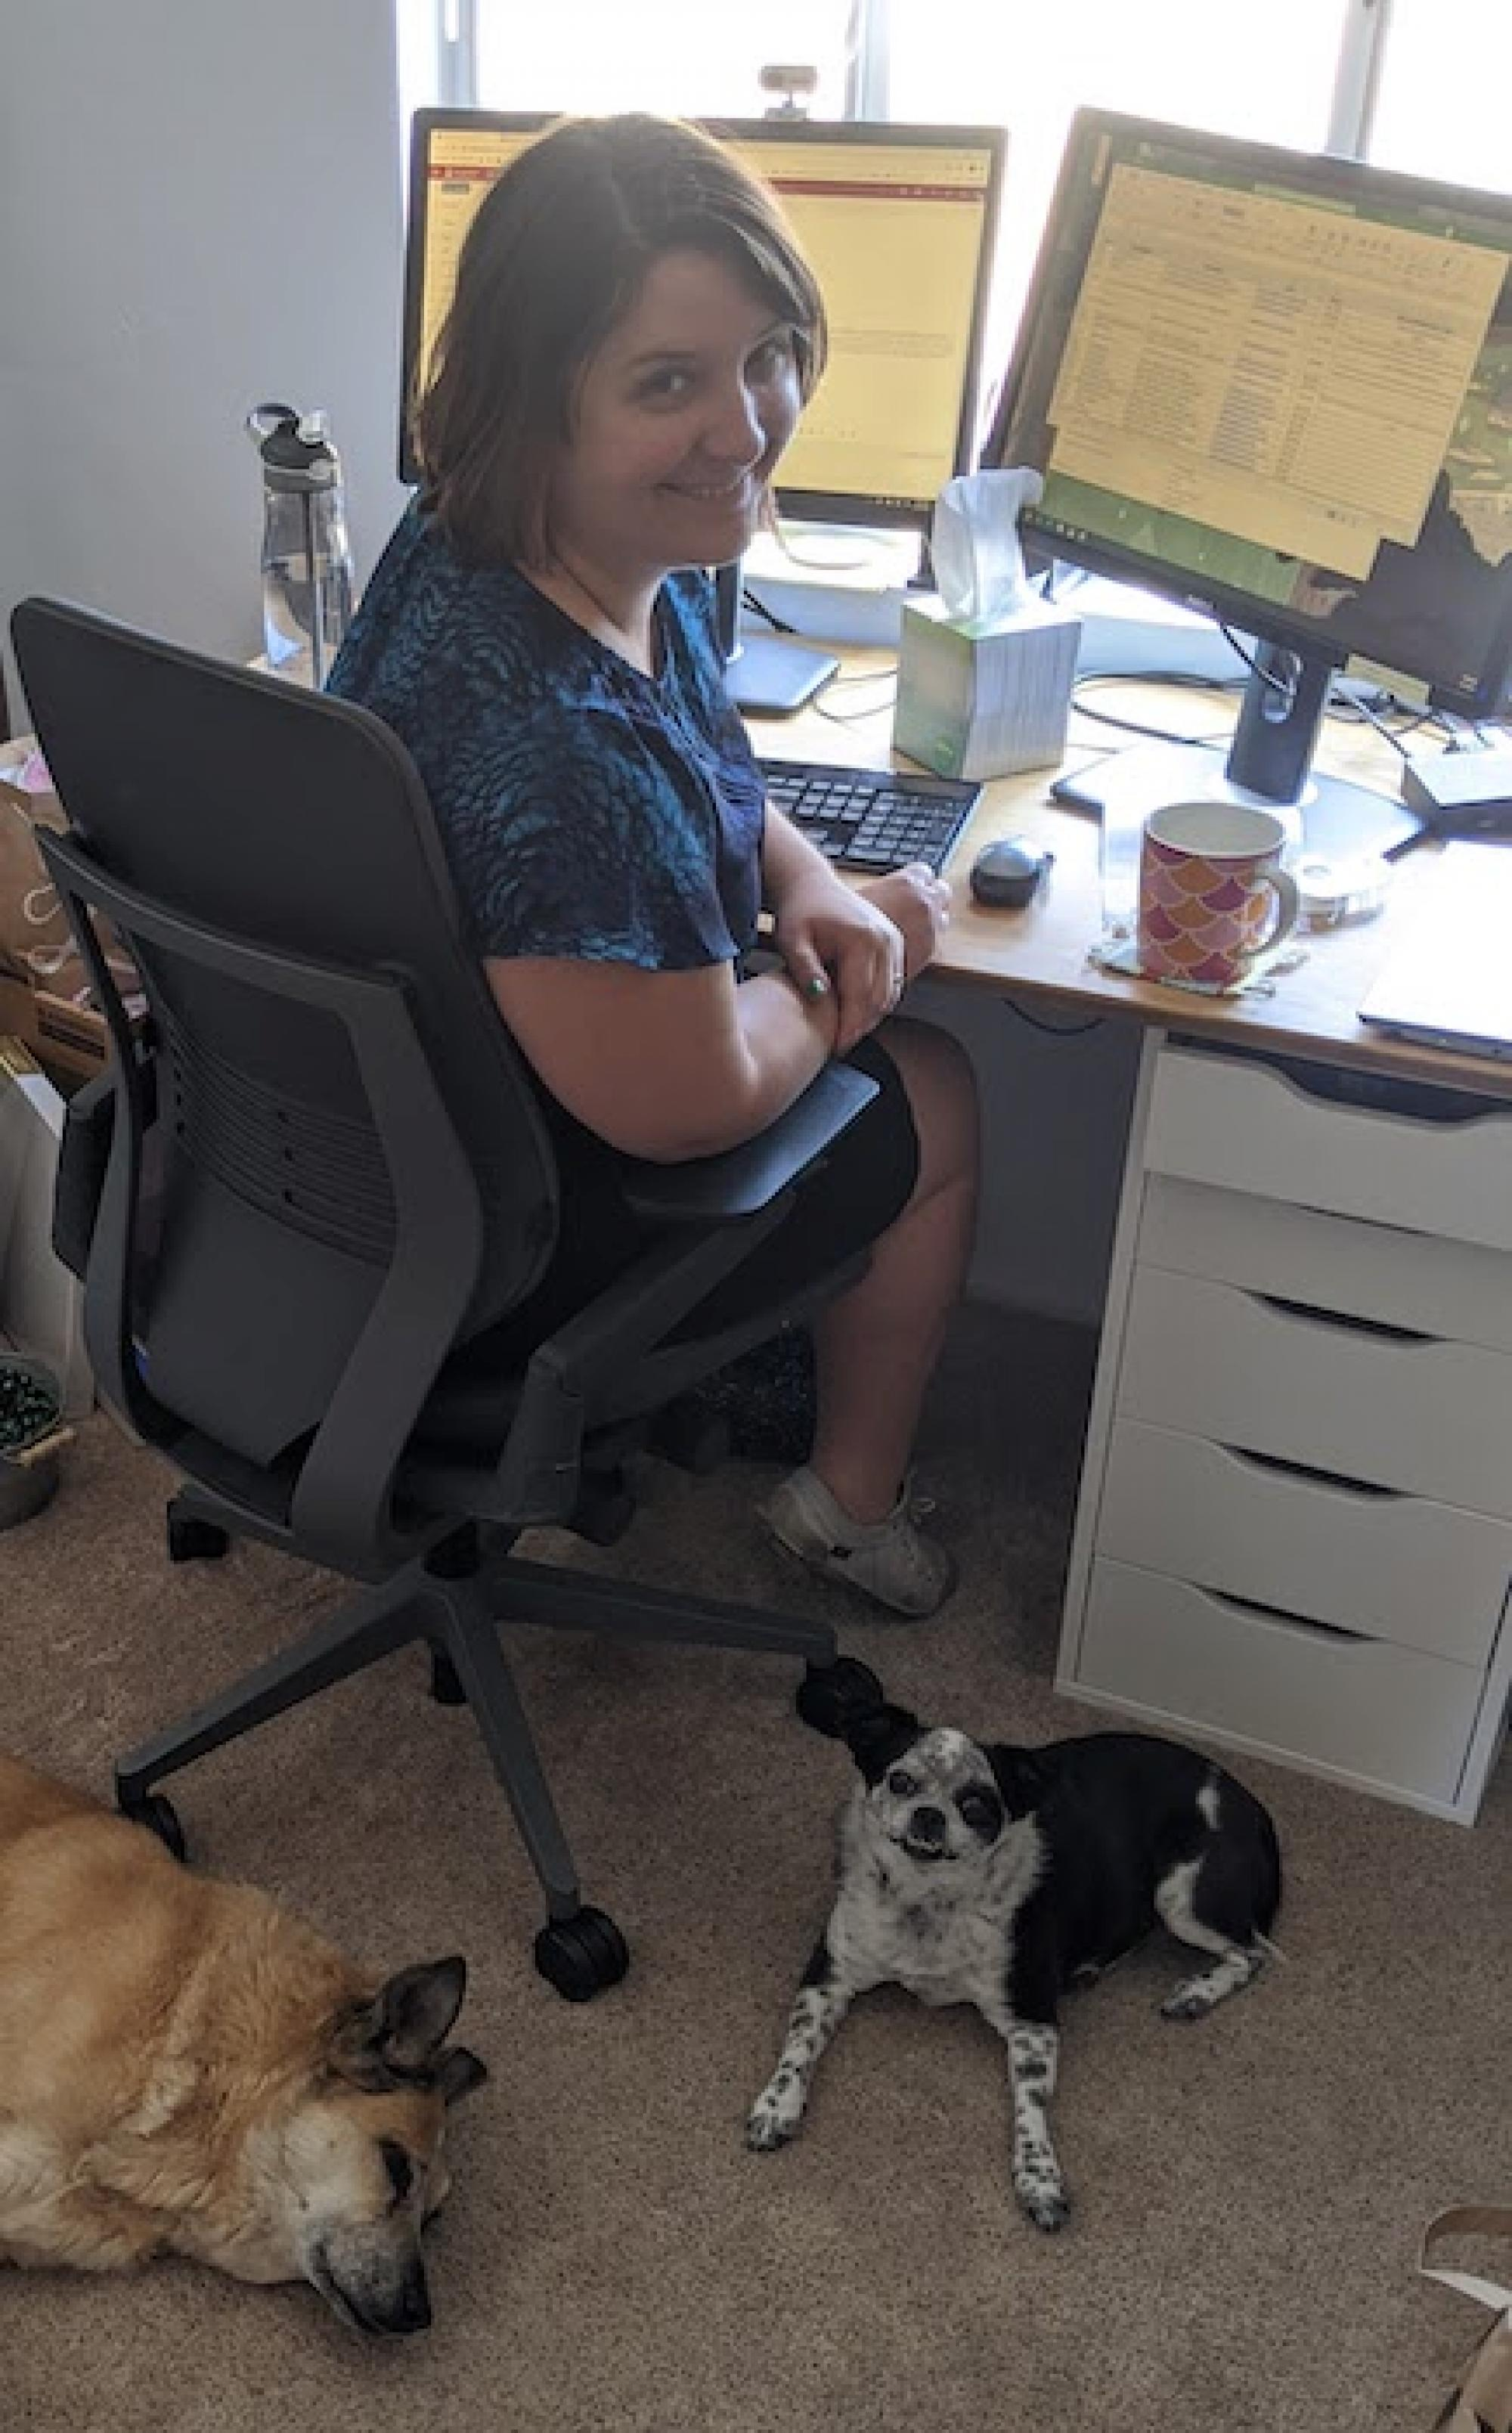 I've attached a photo of a thing my dogs have begun to do. Indy  and Tamale  like to lie down directly behind my chair so I can't get up during the workday without disturbing them. – Suzanne Williams, HIPAA privacy analyst, Research, Innovation and Impact